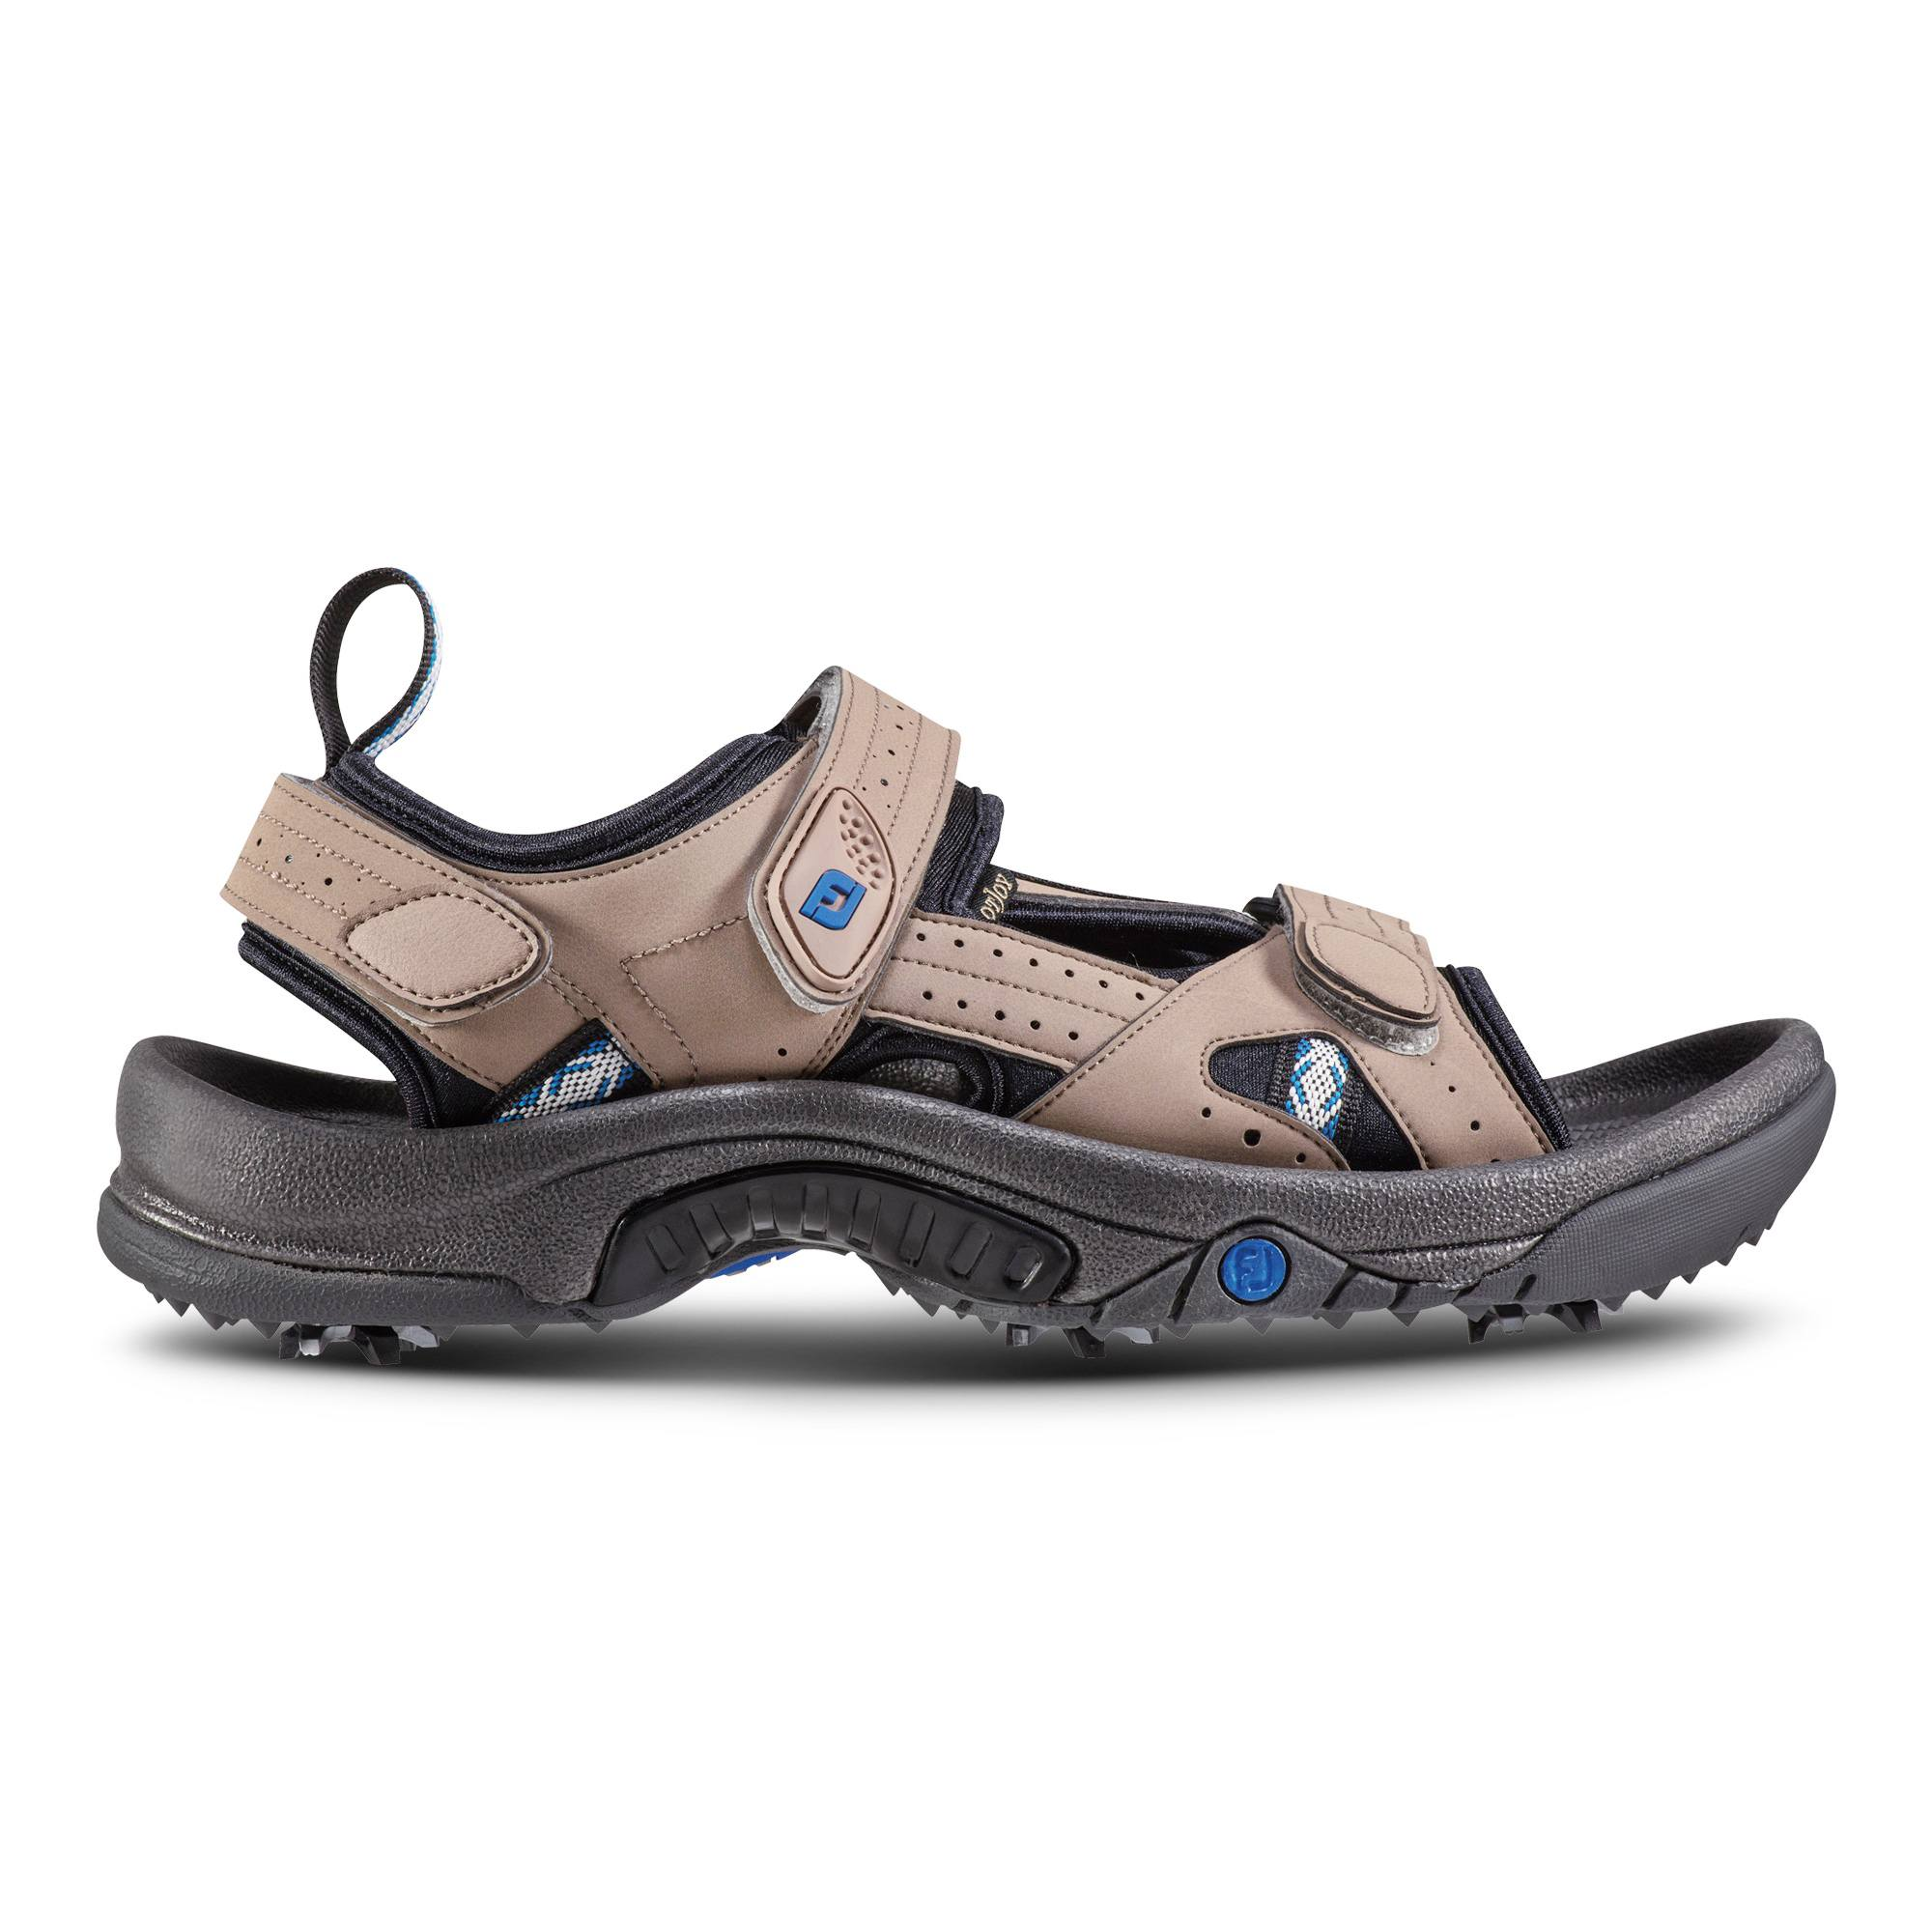 9b2e5e1dde003 FootJoy Golf- Sandals